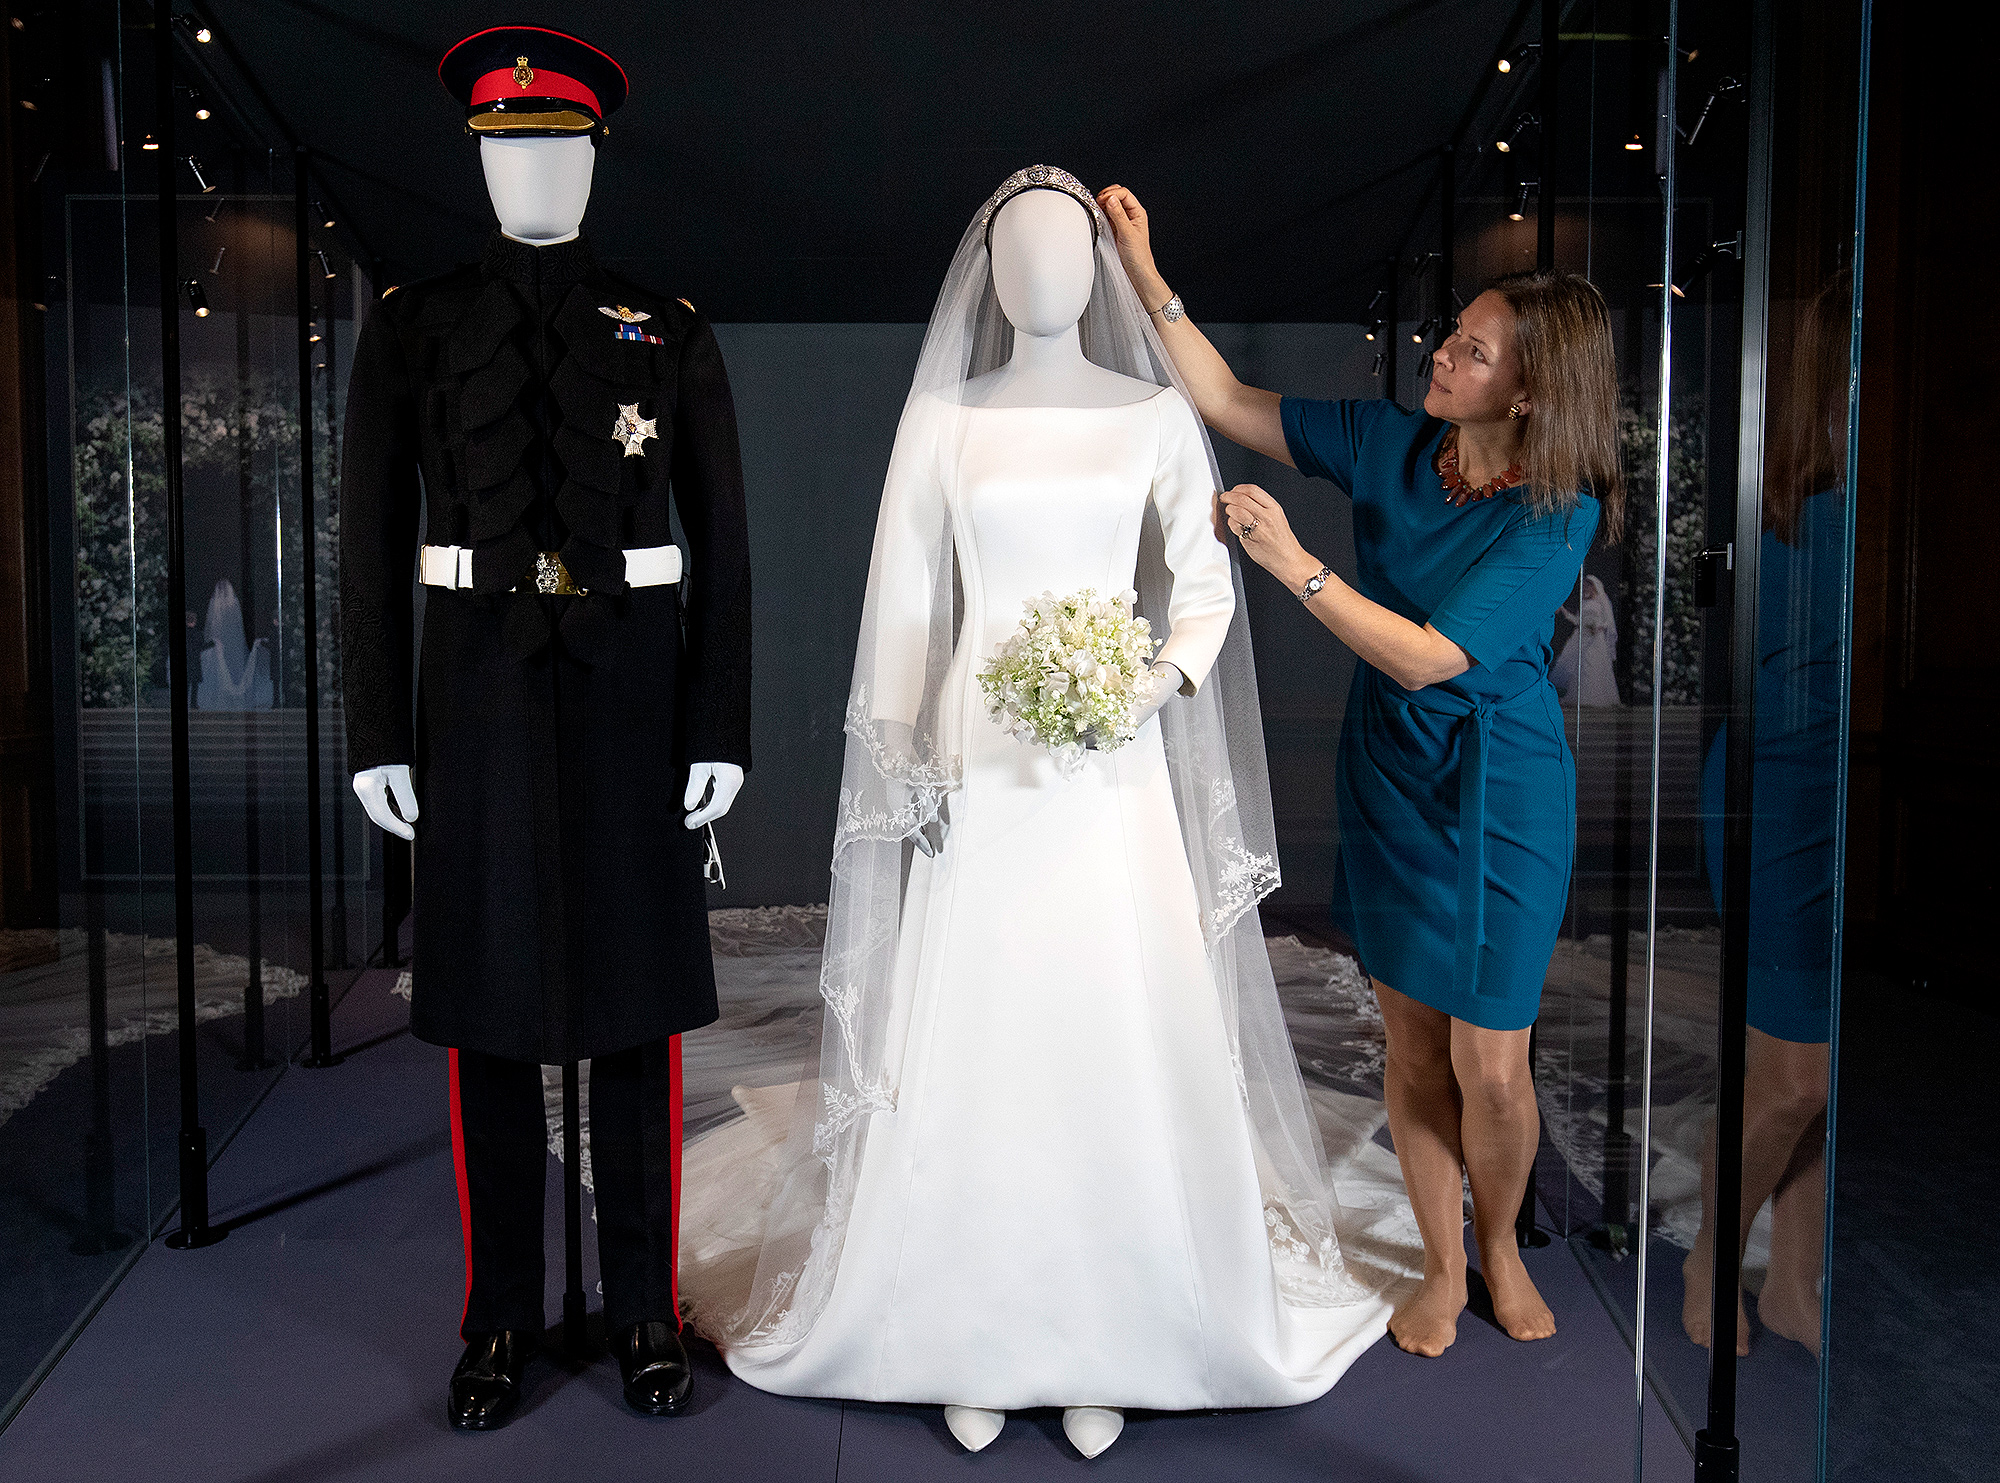 'A Royal Wedding: The Duke and Duchess of Sussex'